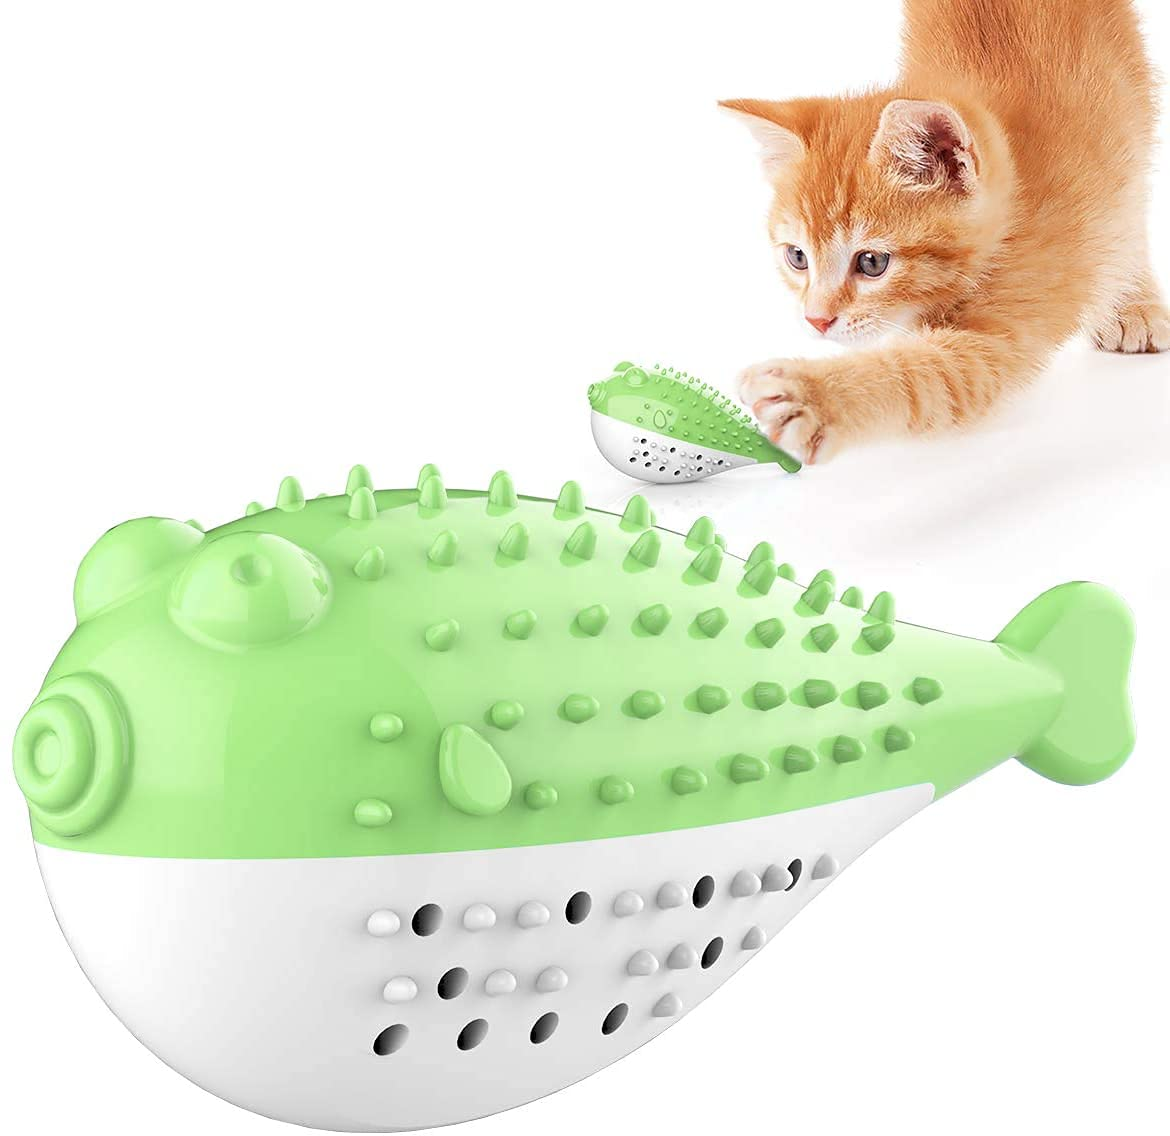 Pets Empire Playing Feeding Toy With Bell For Kitten Kitty Cats Teeth Cleaning,Puffer Fish Shape Pet Toy,Cat Toothbrush Catnip Toy,Cat Interactive Toy